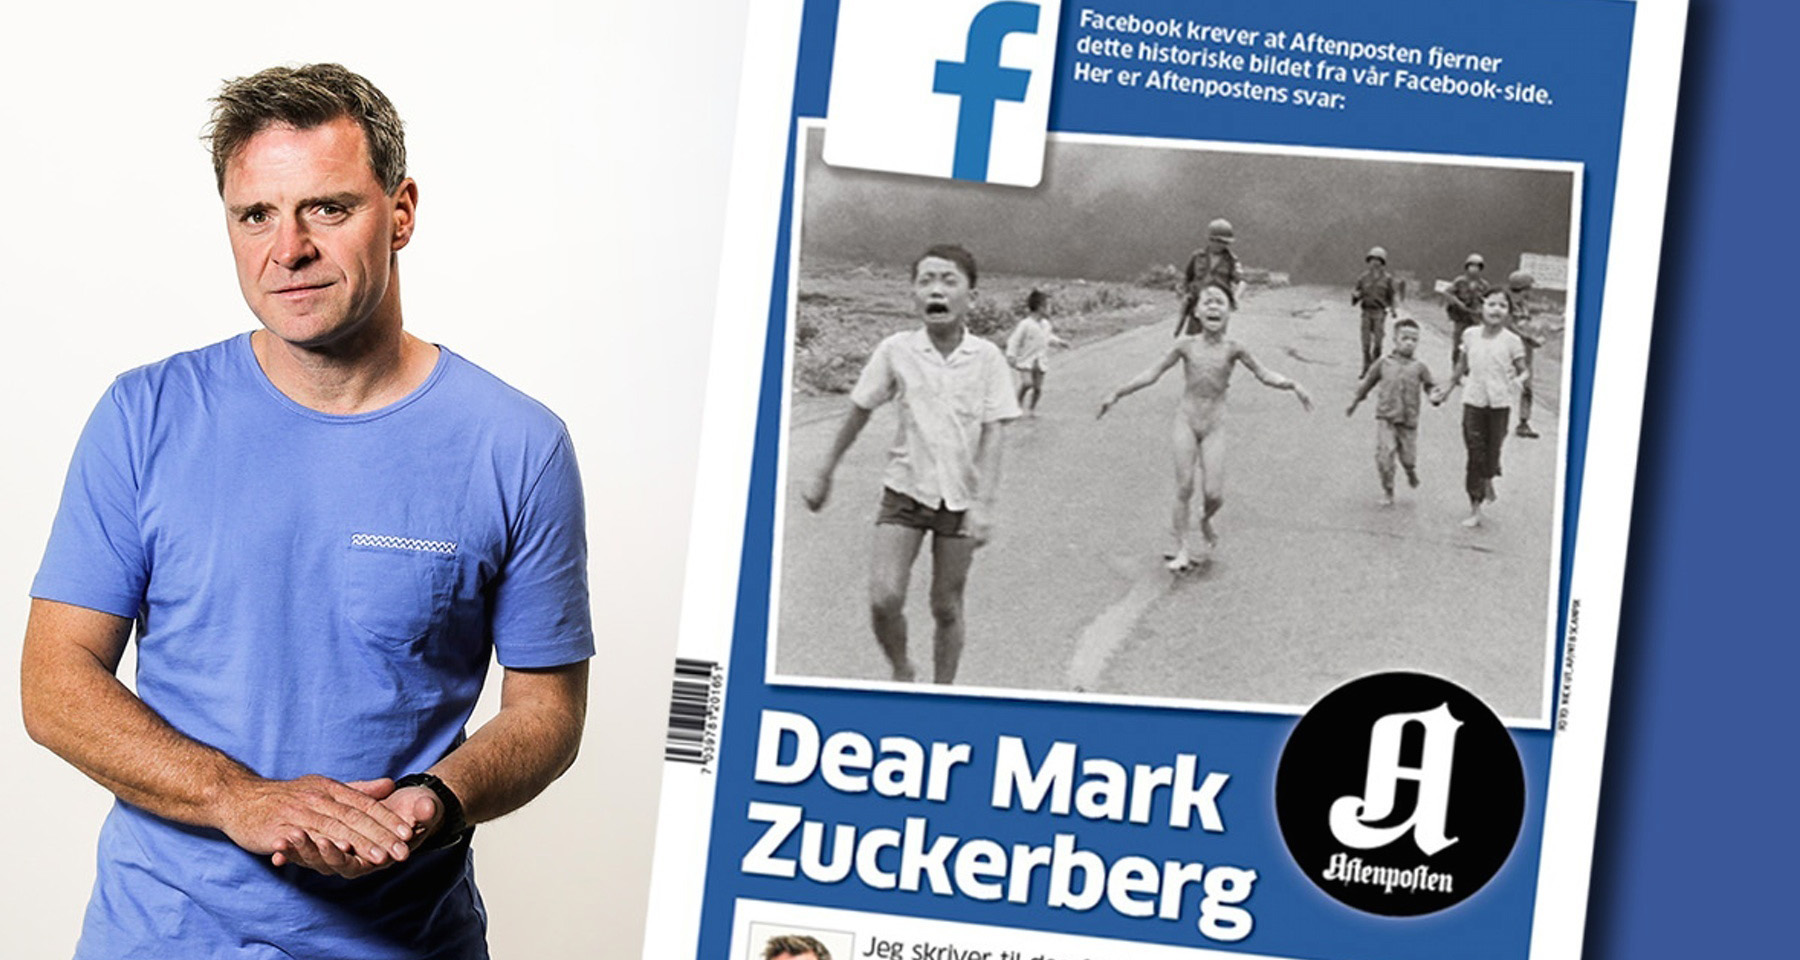 The truth behind the publisher relationship with Facebook